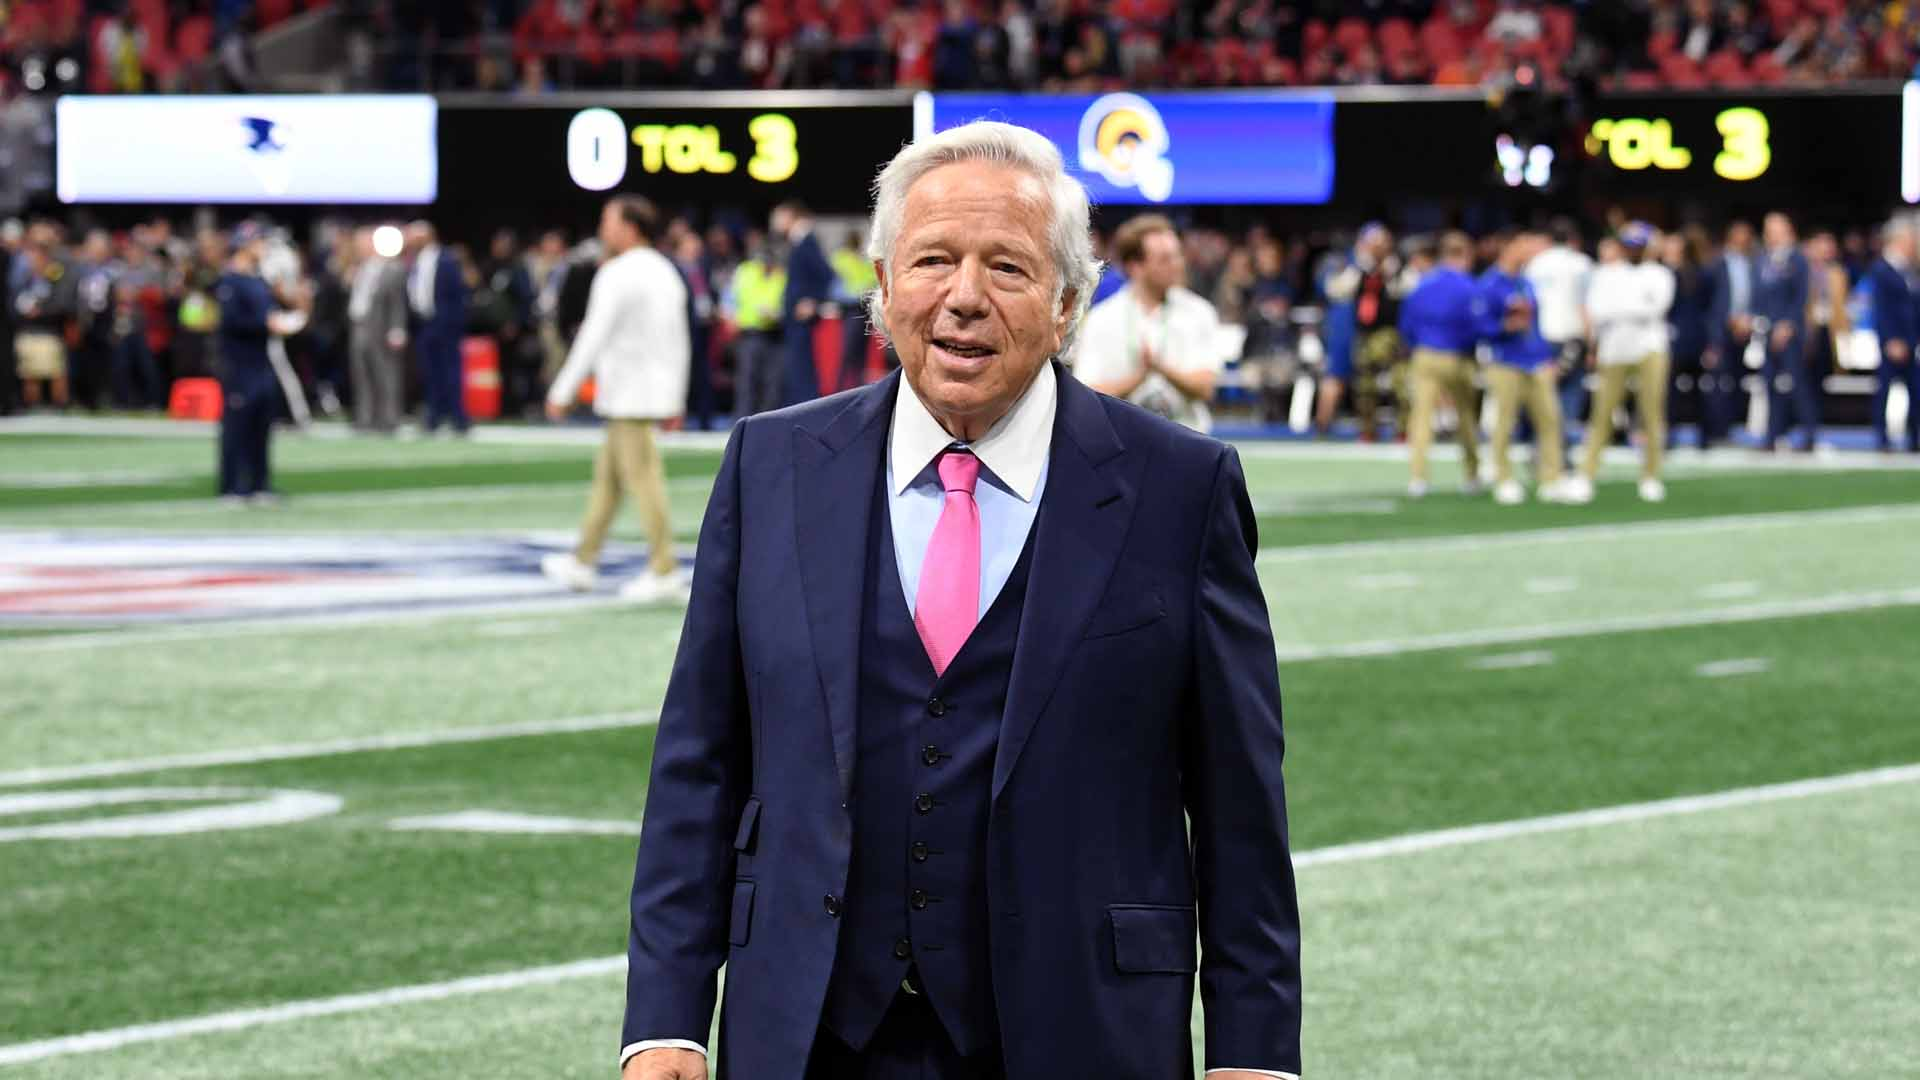 New England Patriots owner Robert Kraft attends the Super Bowl LIII Pregame at Mercedes-Benz Stadium in Atlanta on February 3, 2019. (Credit: Kevin Winter/Getty Images)